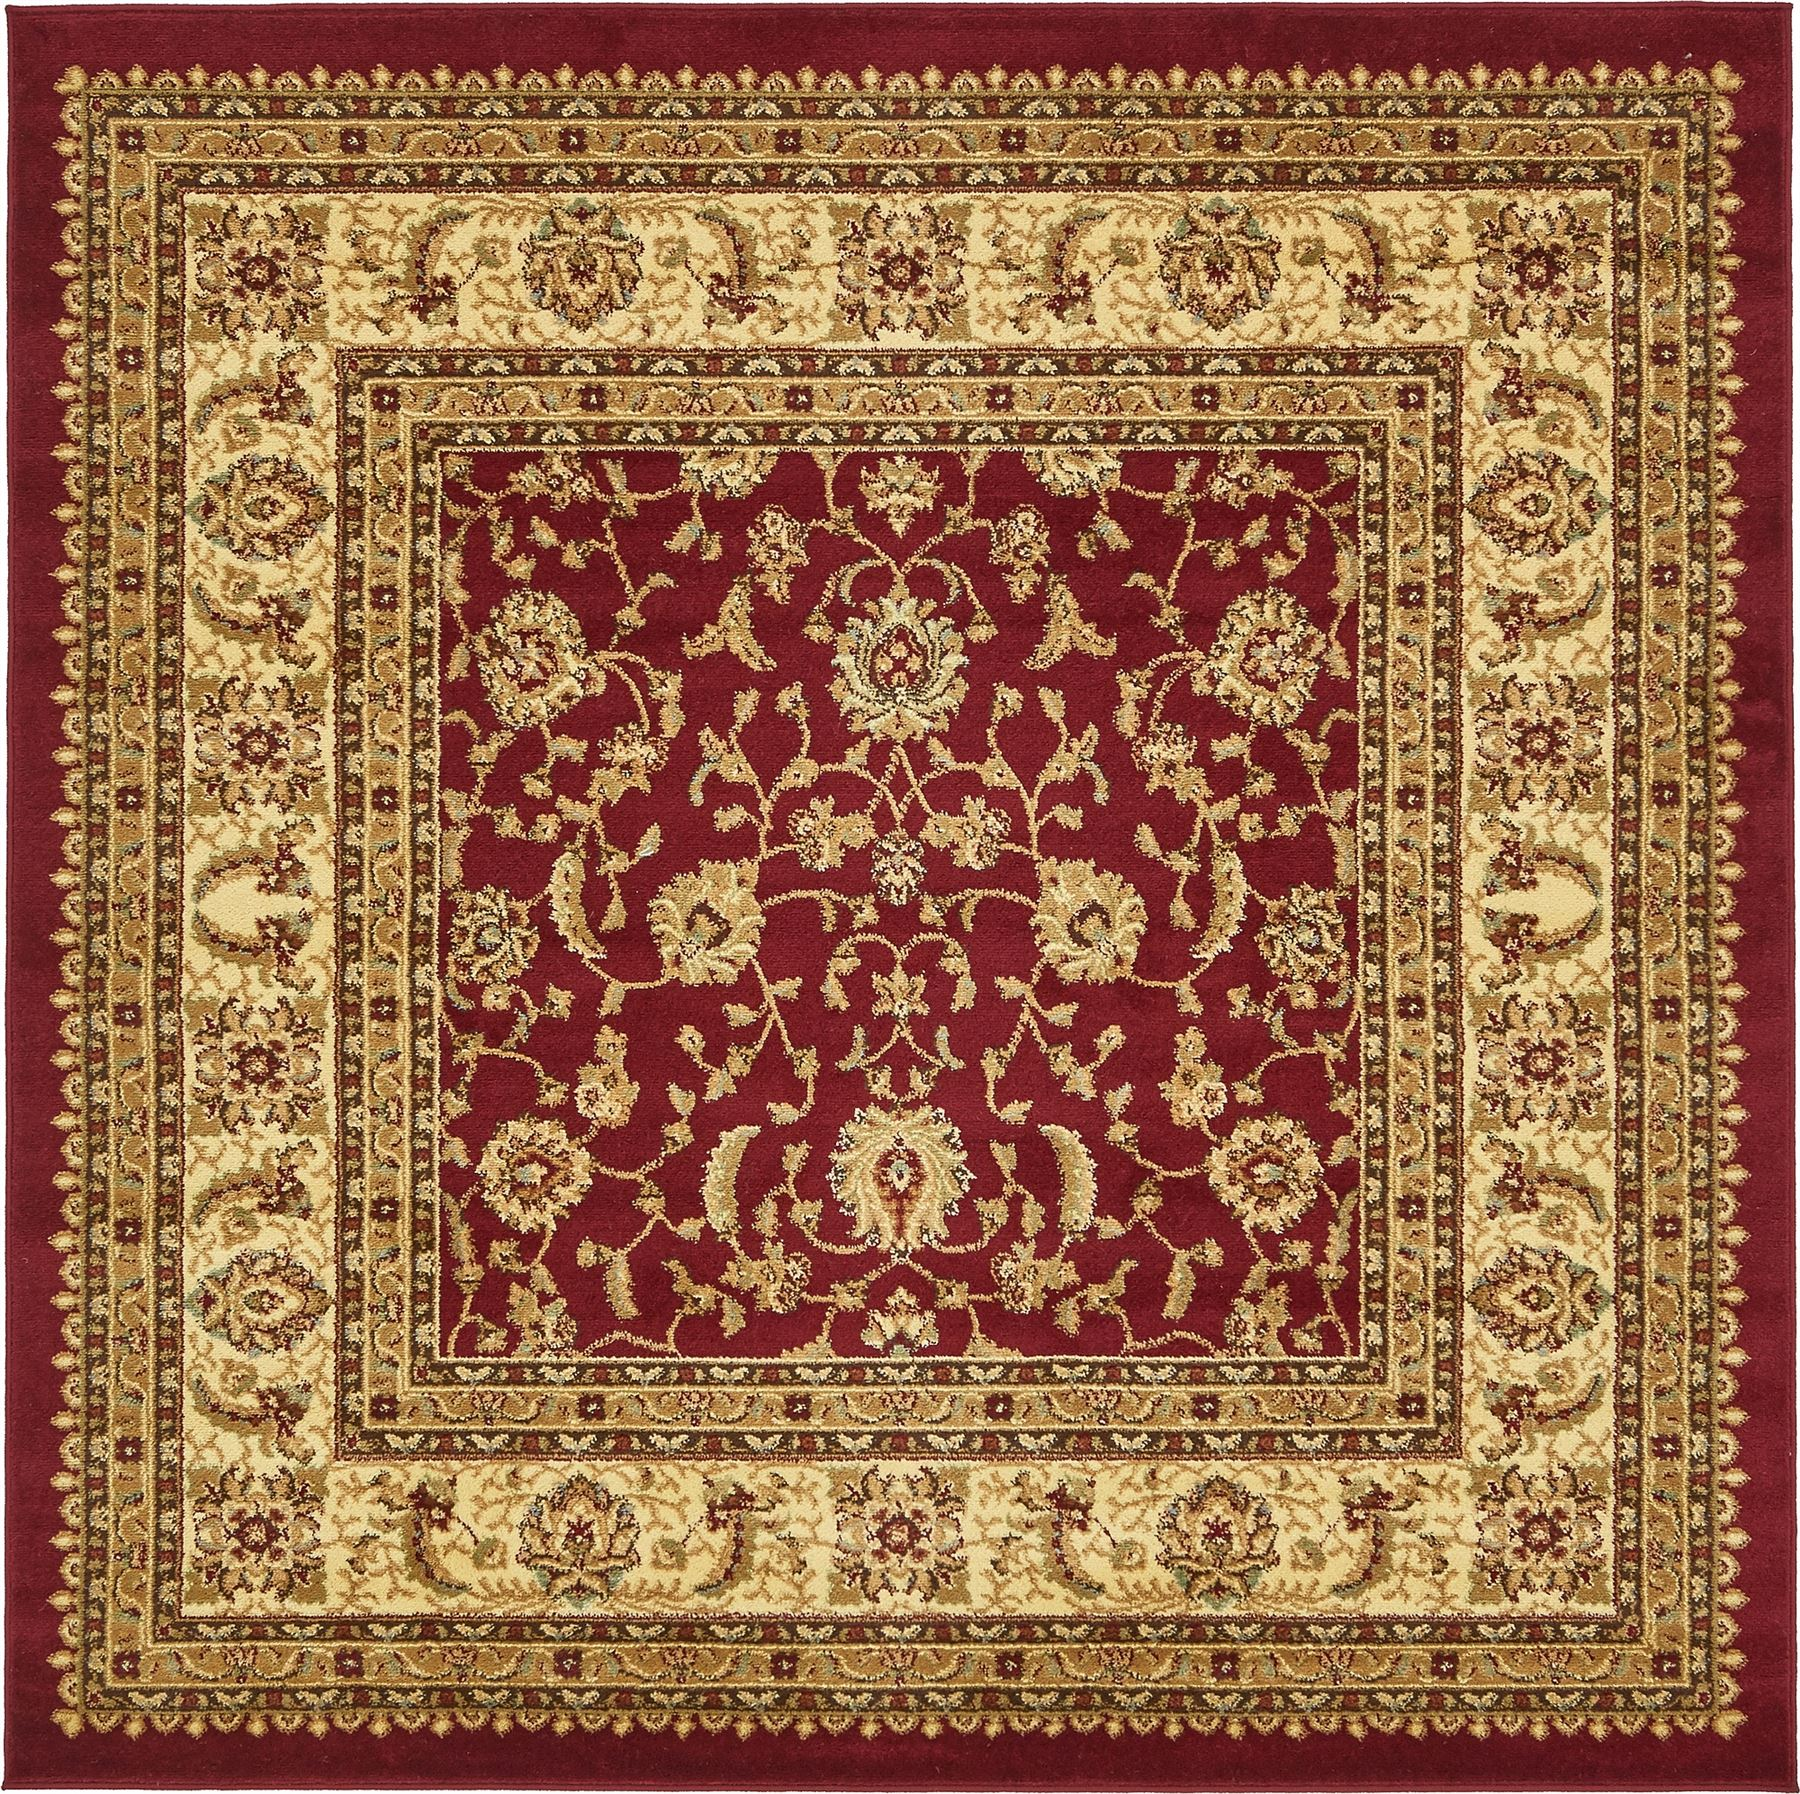 Oriental Rugs Out Of Style: Traditional Rug Oriental Area Rug Persian Style Carpet New